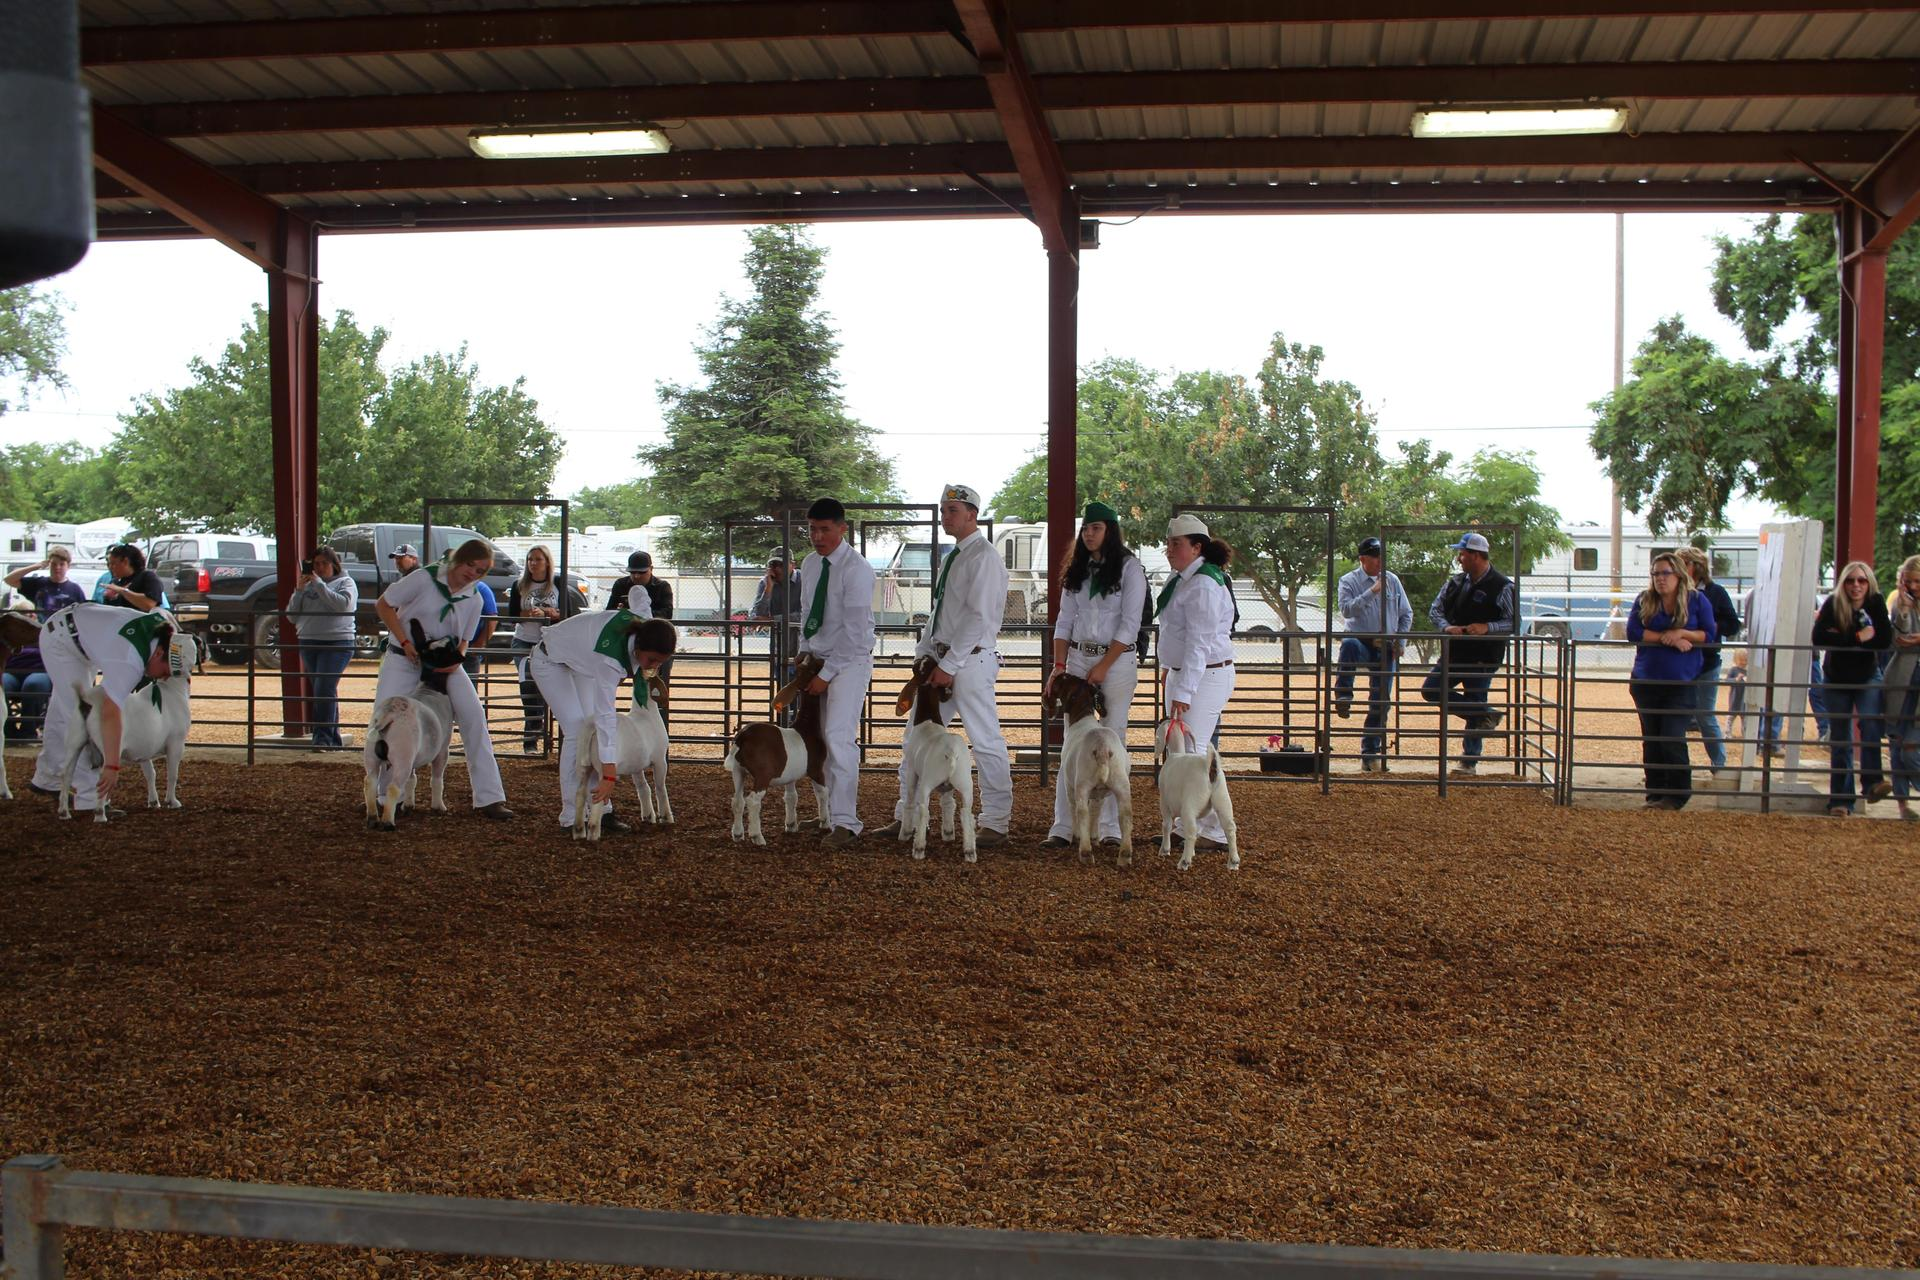 4 H students showing their livestock for judging.